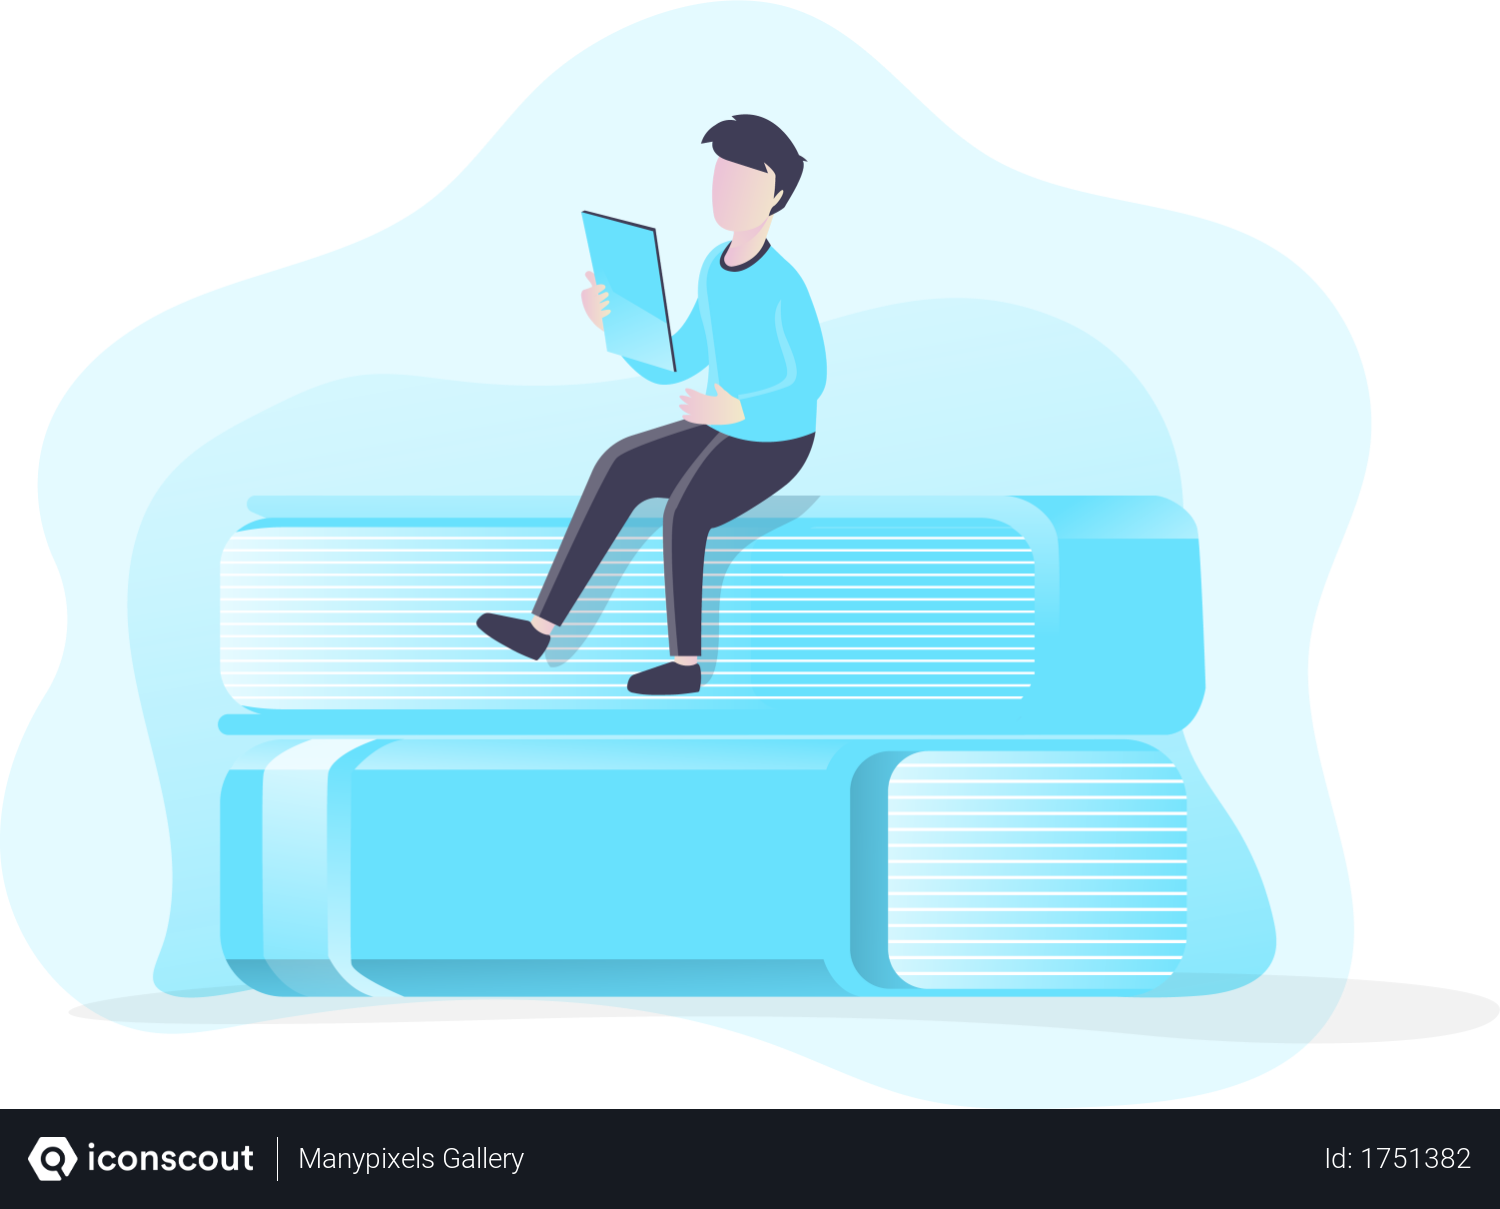 Download Free Book Lovers Illustration download in PNG & Vector format